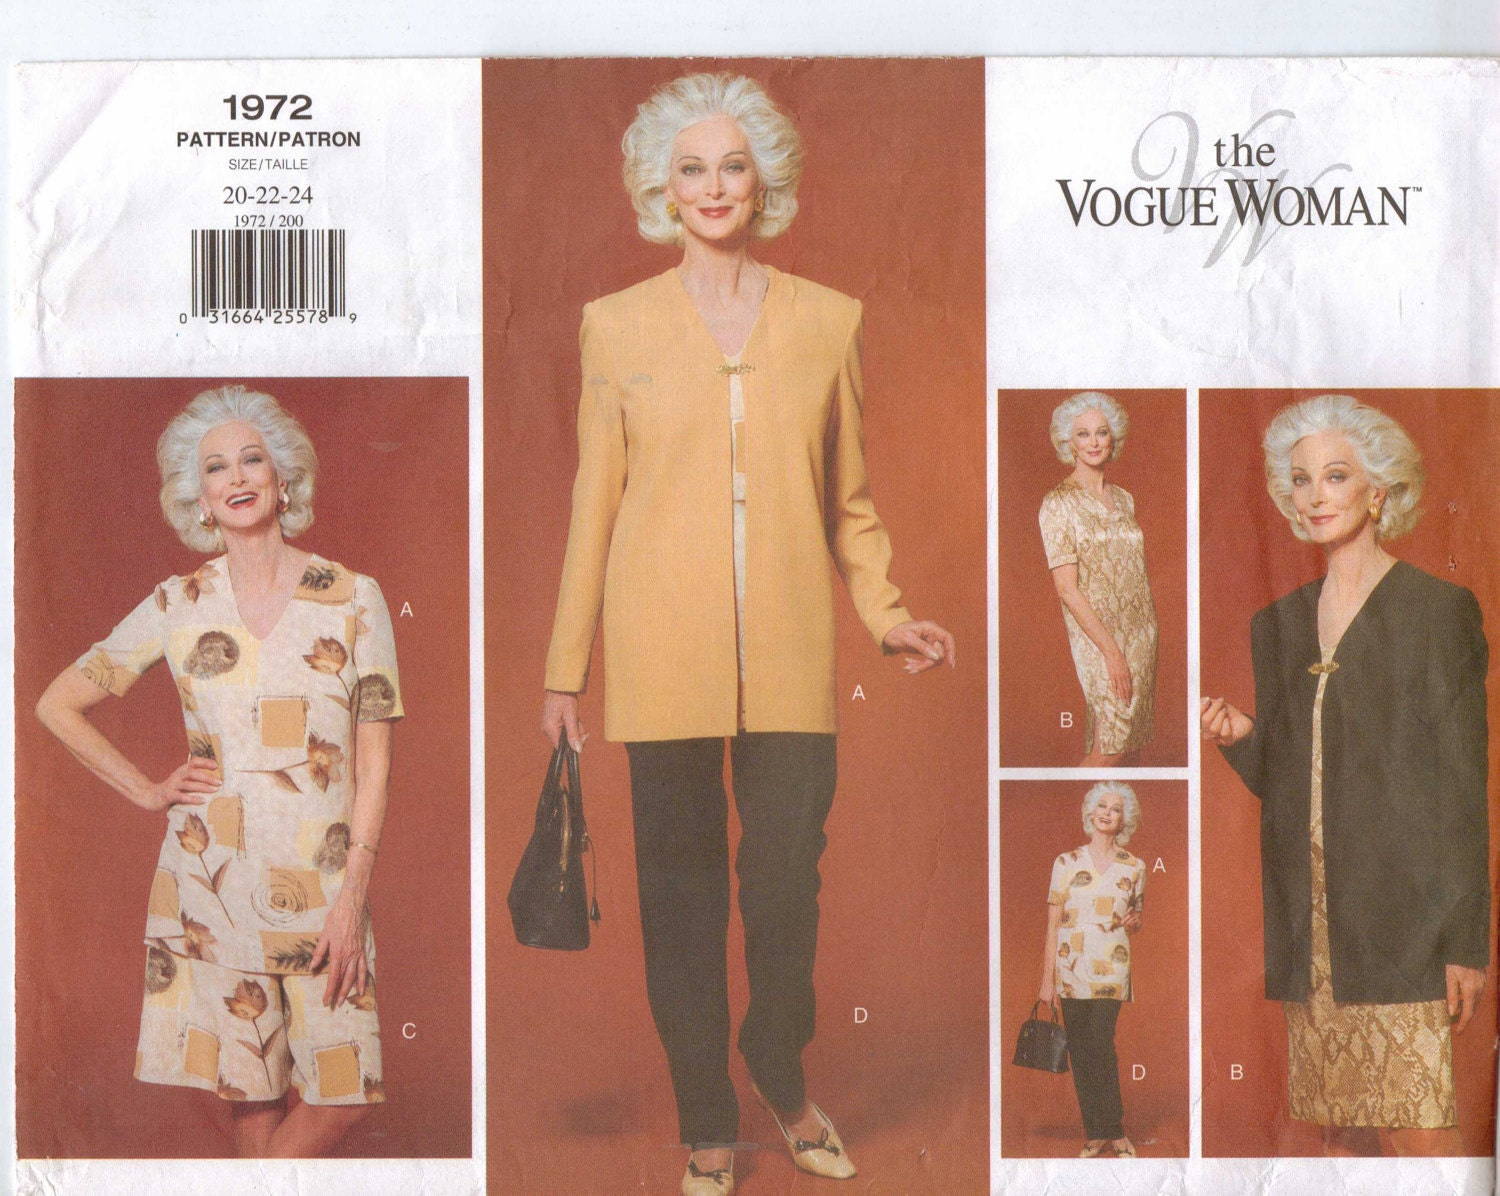 Carmen Dell'Orefice models 1990s The Vogue Woman pattern Vogue 1972